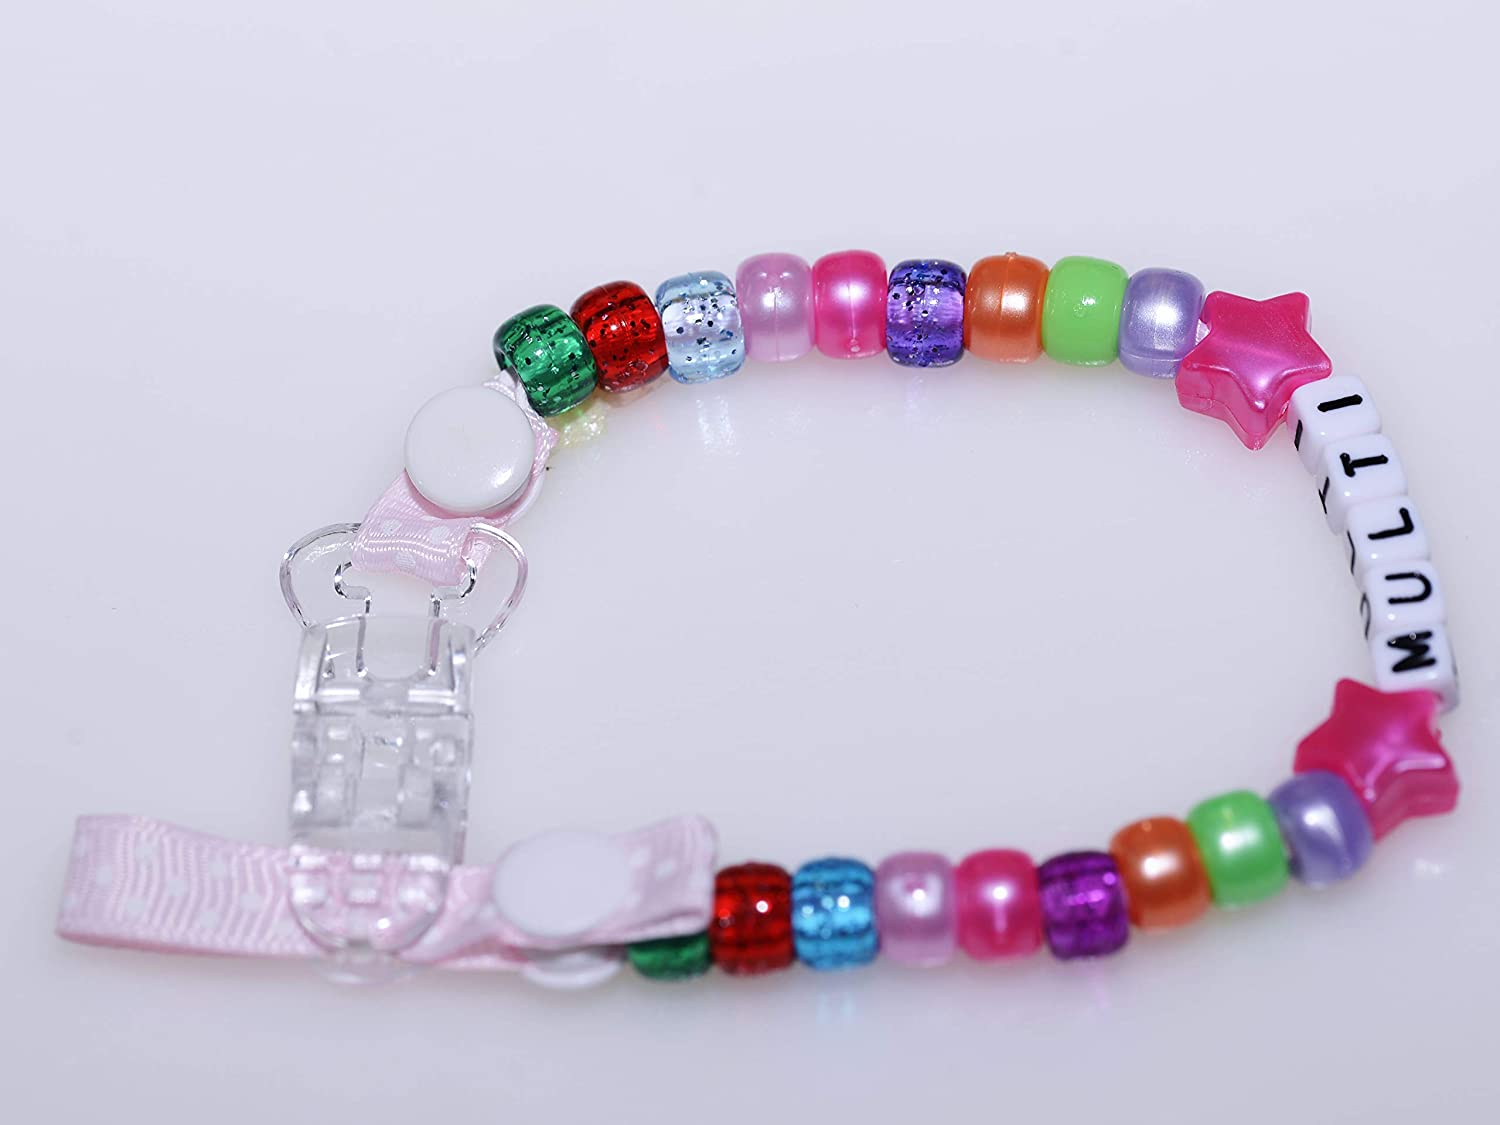 Hot Pink, with Bow Personalised Dummy Chain for Baby Girl Baby Boy by Polka Dot Ribbon with Any Name in Many Colours